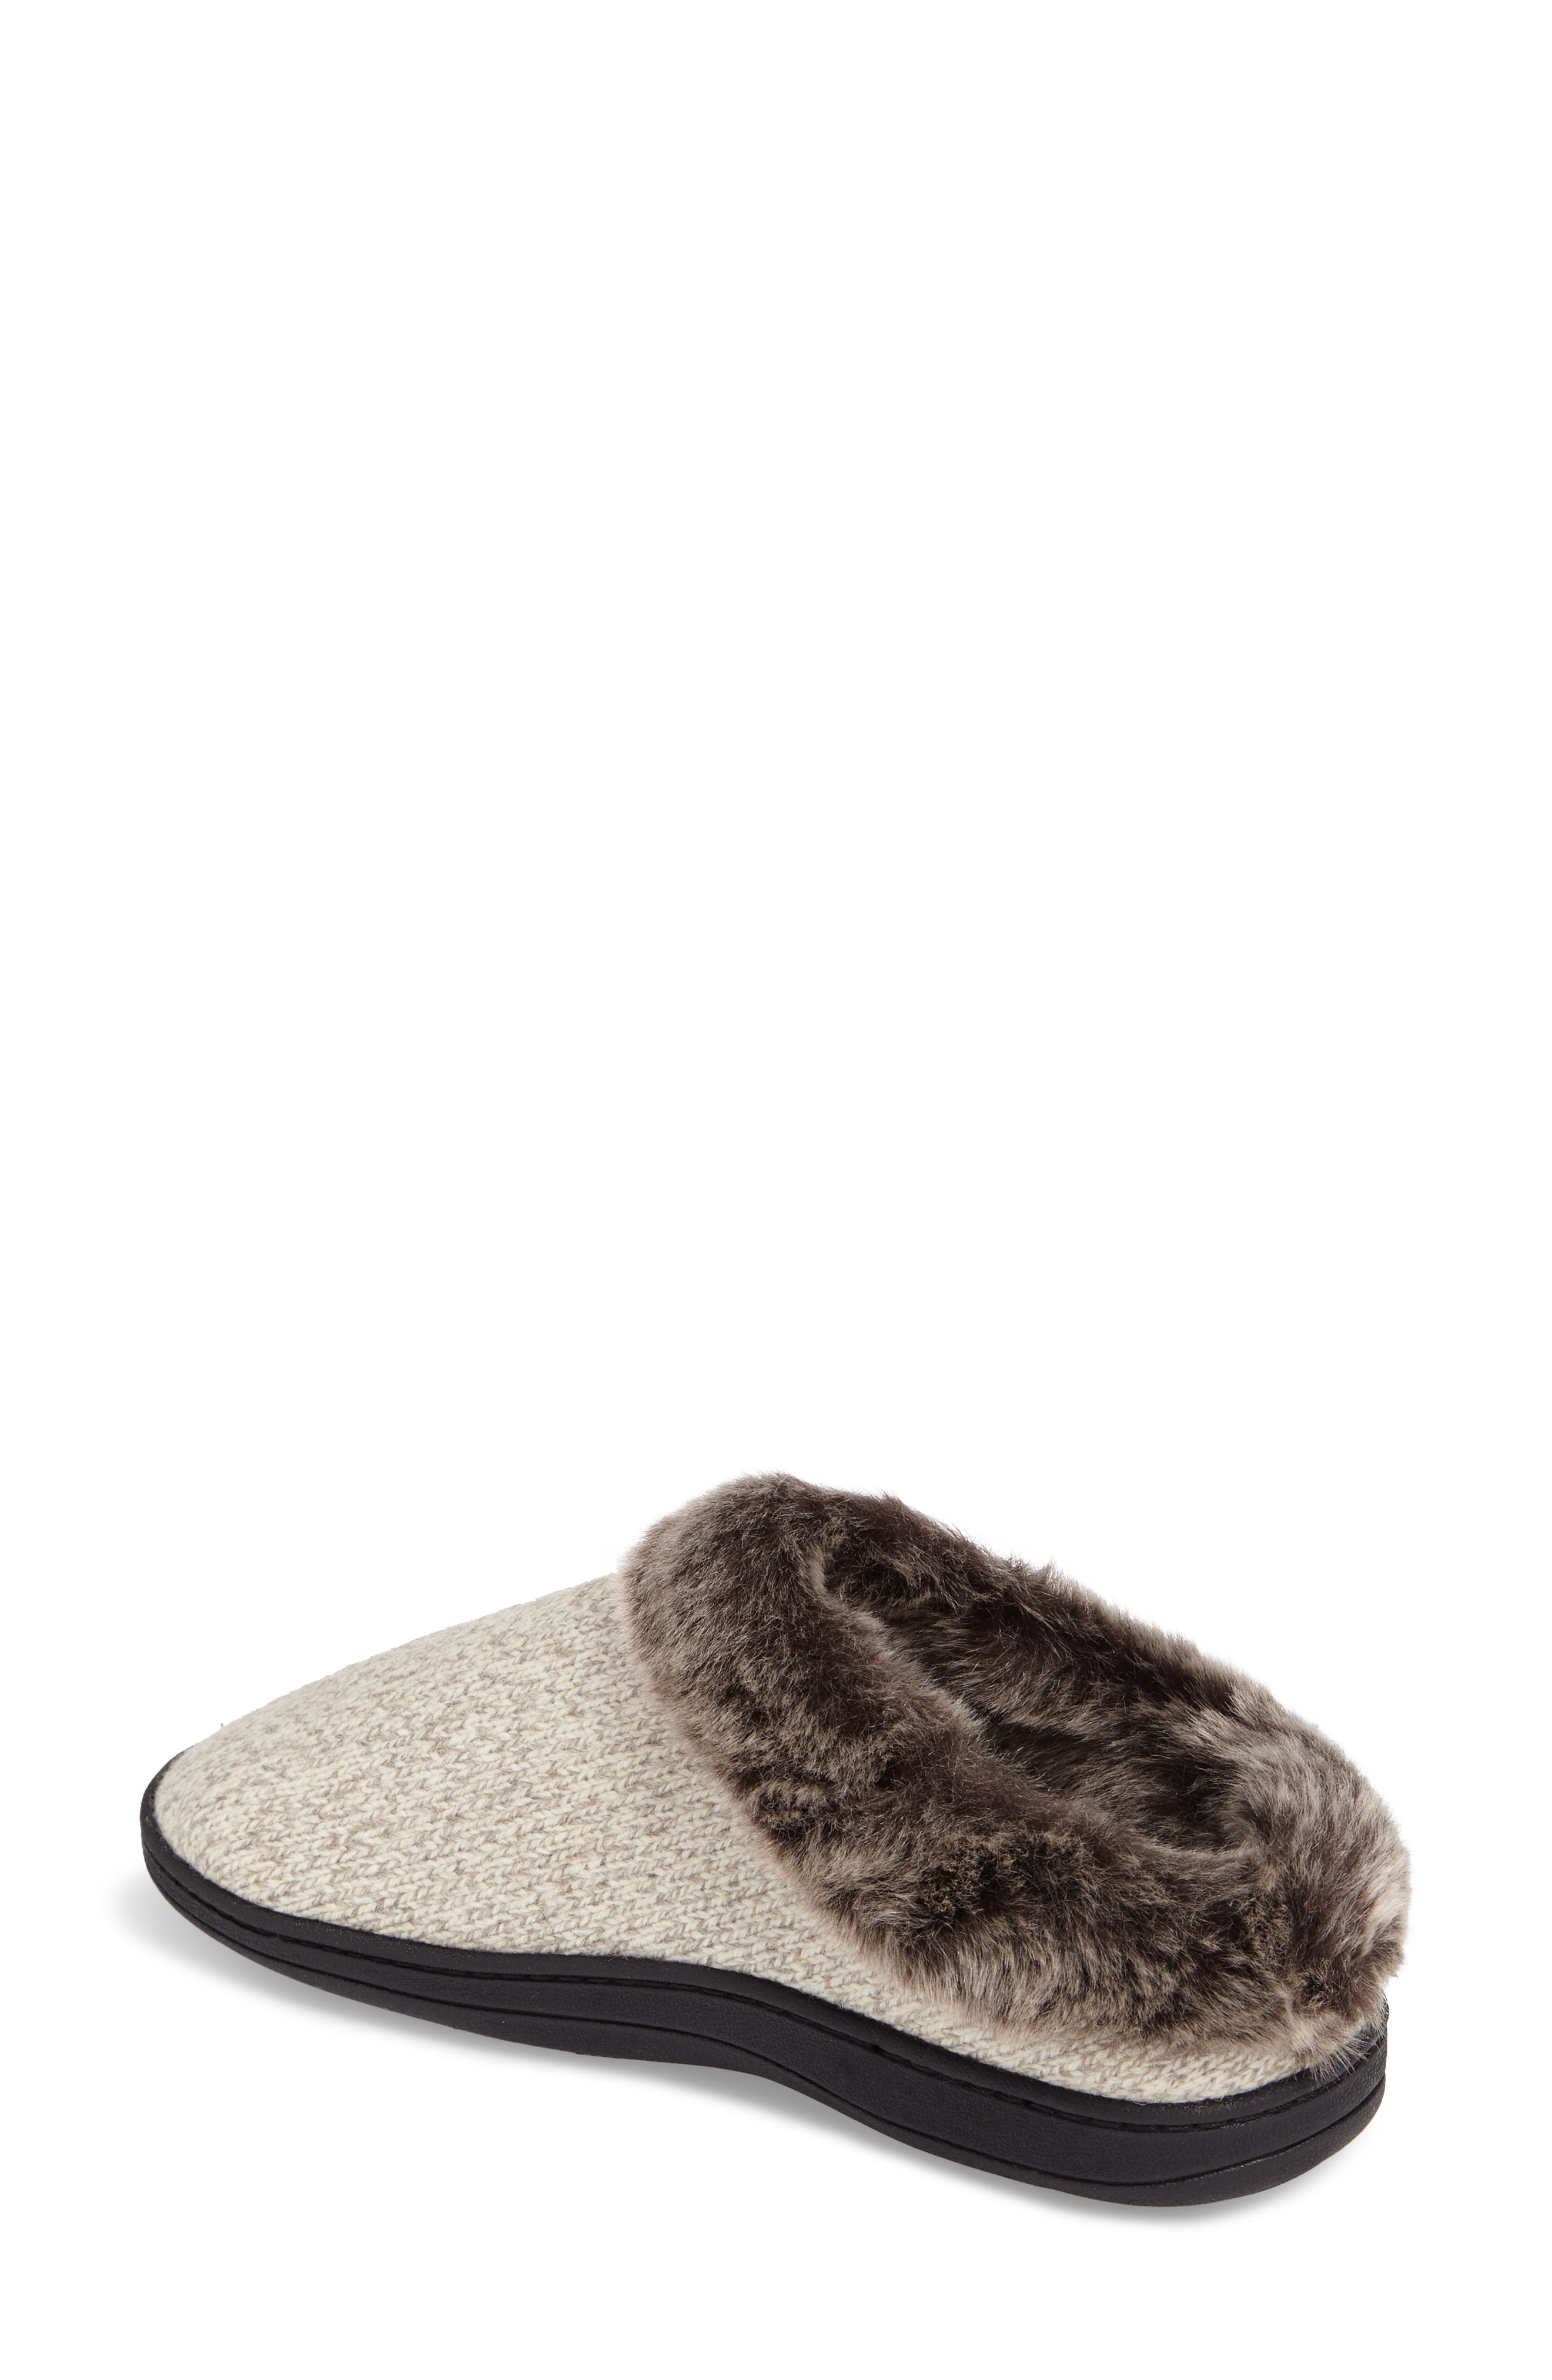 Chinchilla Faux Fur Slipper,                             Alternate thumbnail 2, color,                             CHARCOAL HEATHER